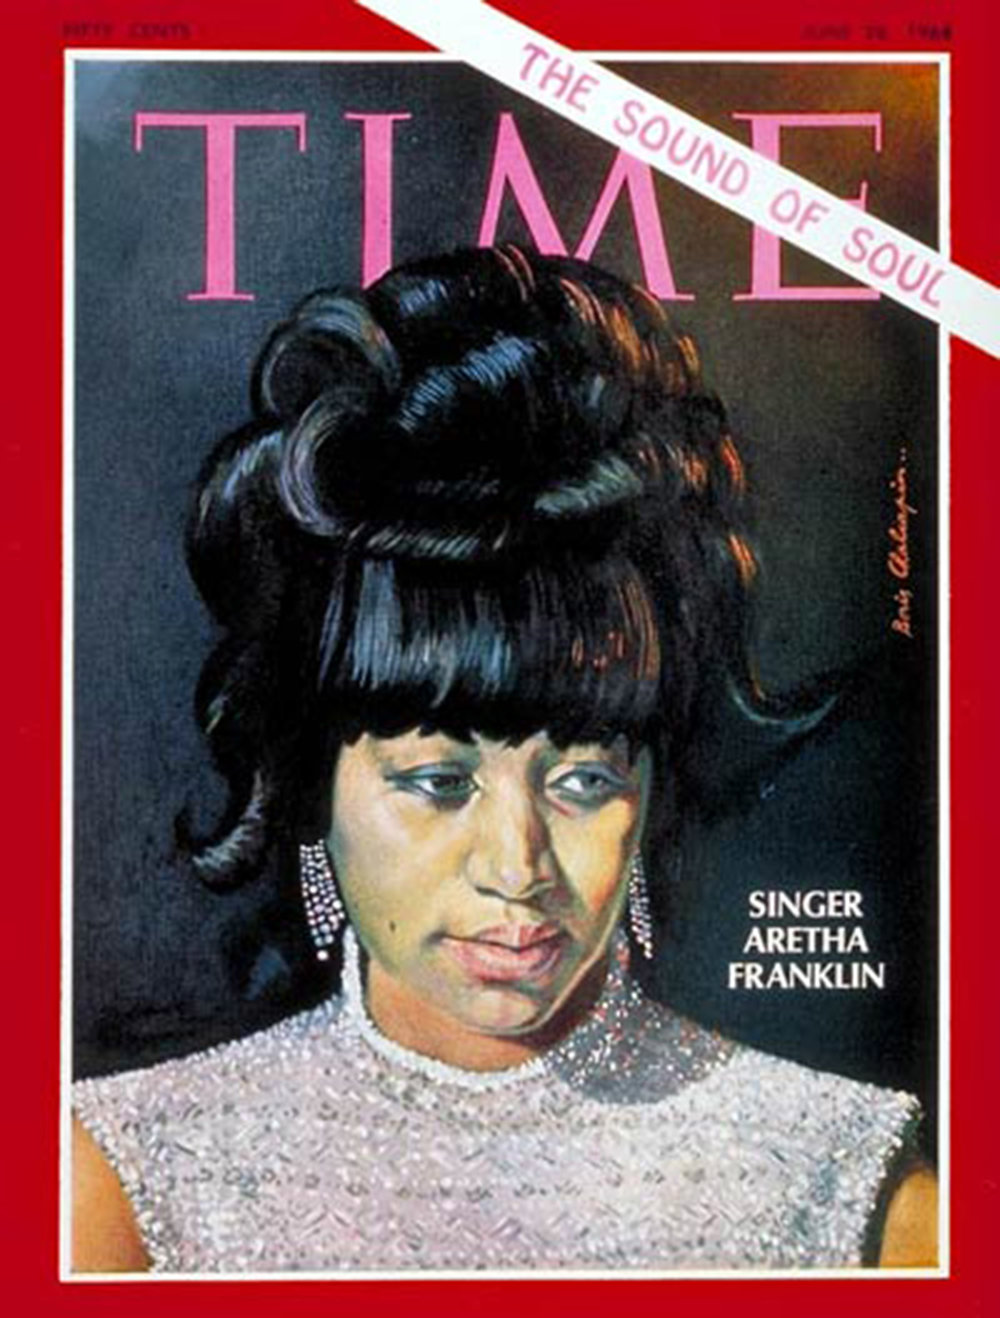 aretha-franklin-cover.jpg